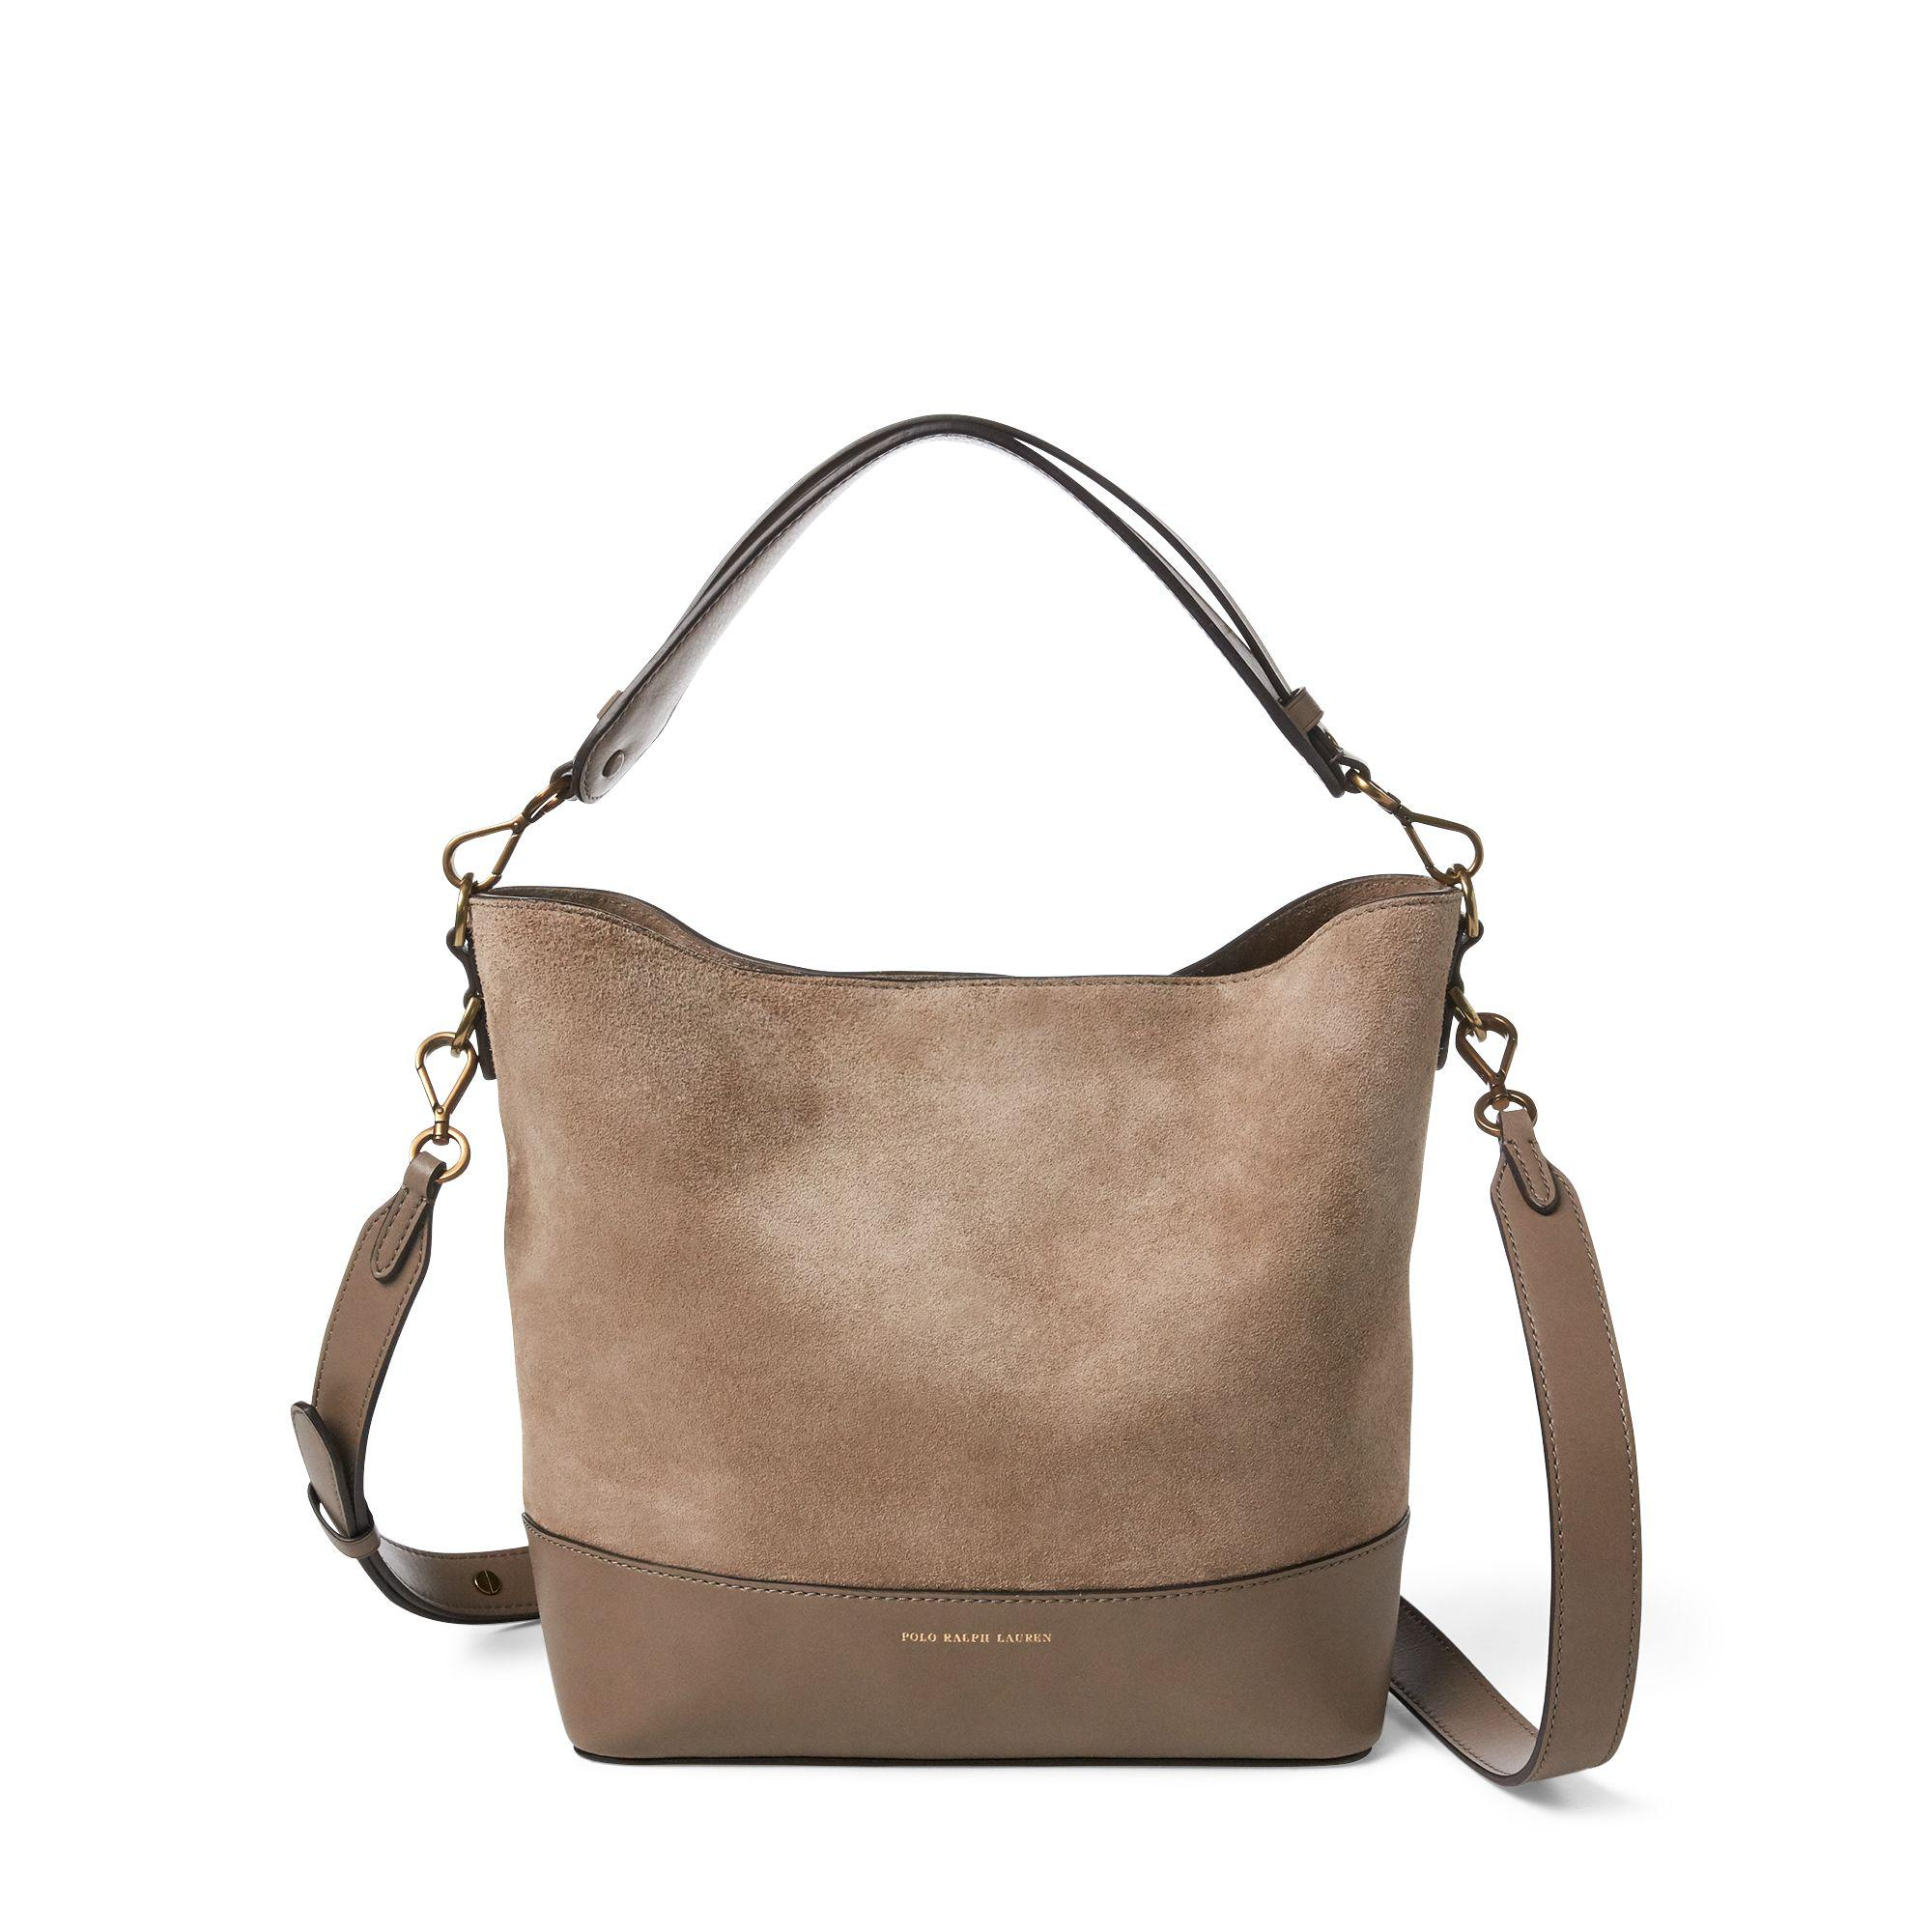 b1f63123ce Lyst - Polo Ralph Lauren Small Suede Leather Hobo Bag in Brown